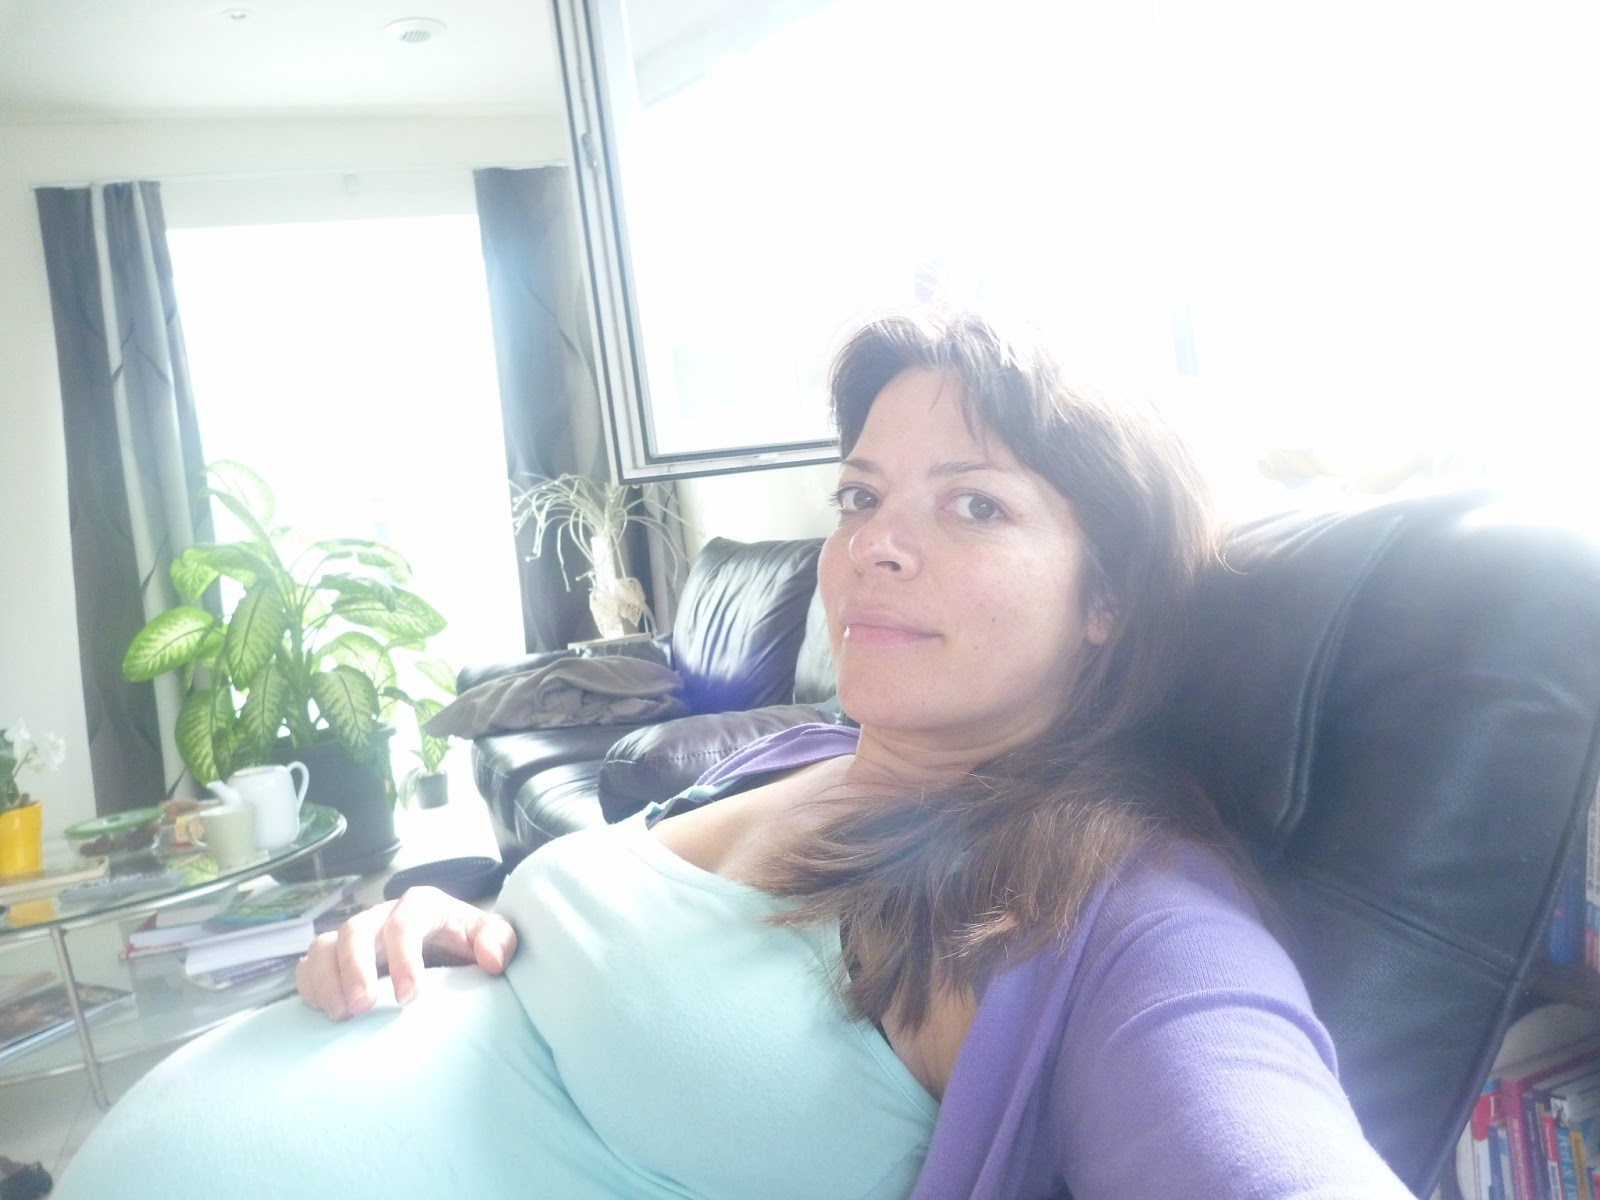 Ecstatic, orgasmic and unassisted home birth